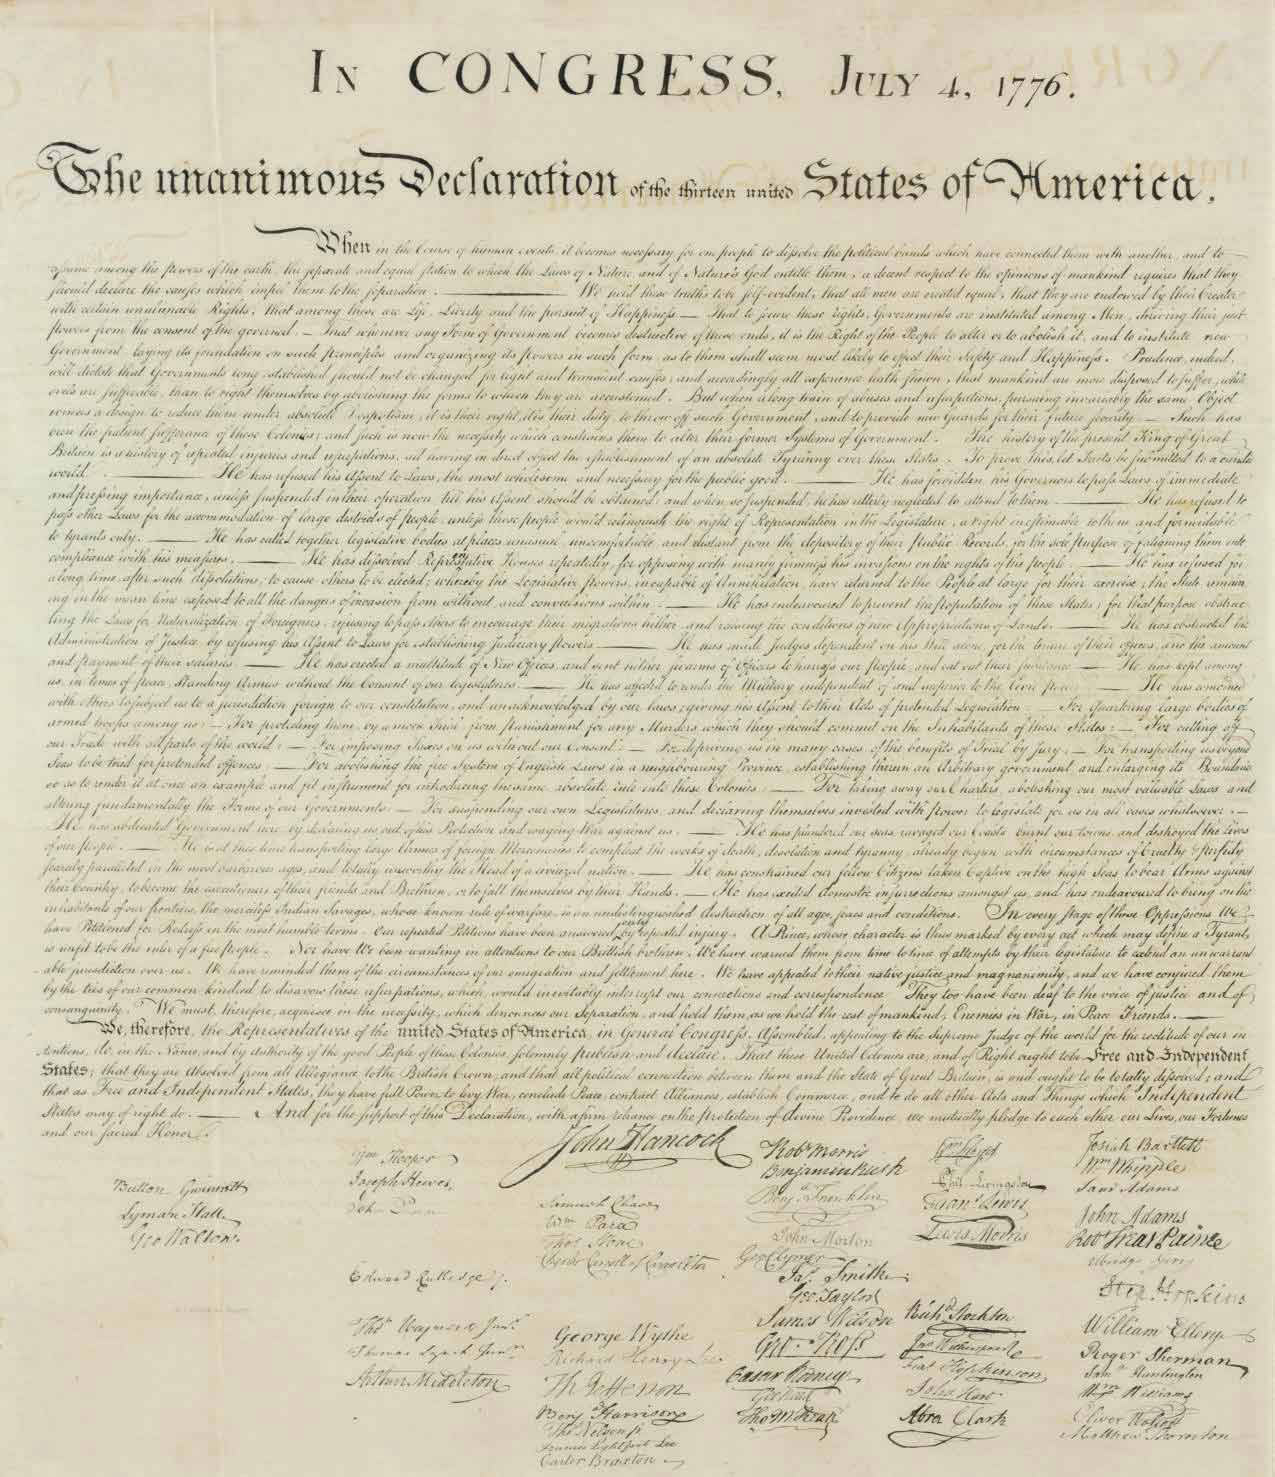 [DECLARATION OF INDEPENDENCE]. In Congress, July 4, 1776. The Unanimous Declaration of the Thirteen United States of America. When in the Course of Human Events... [Washington, D.C.,] engraved by W.J. Stone [1823-1825], reprinted 1833 from the same copperplate, for Peter Force's American Archives (1837-1853), [Traditionally misdated 1848, see below].